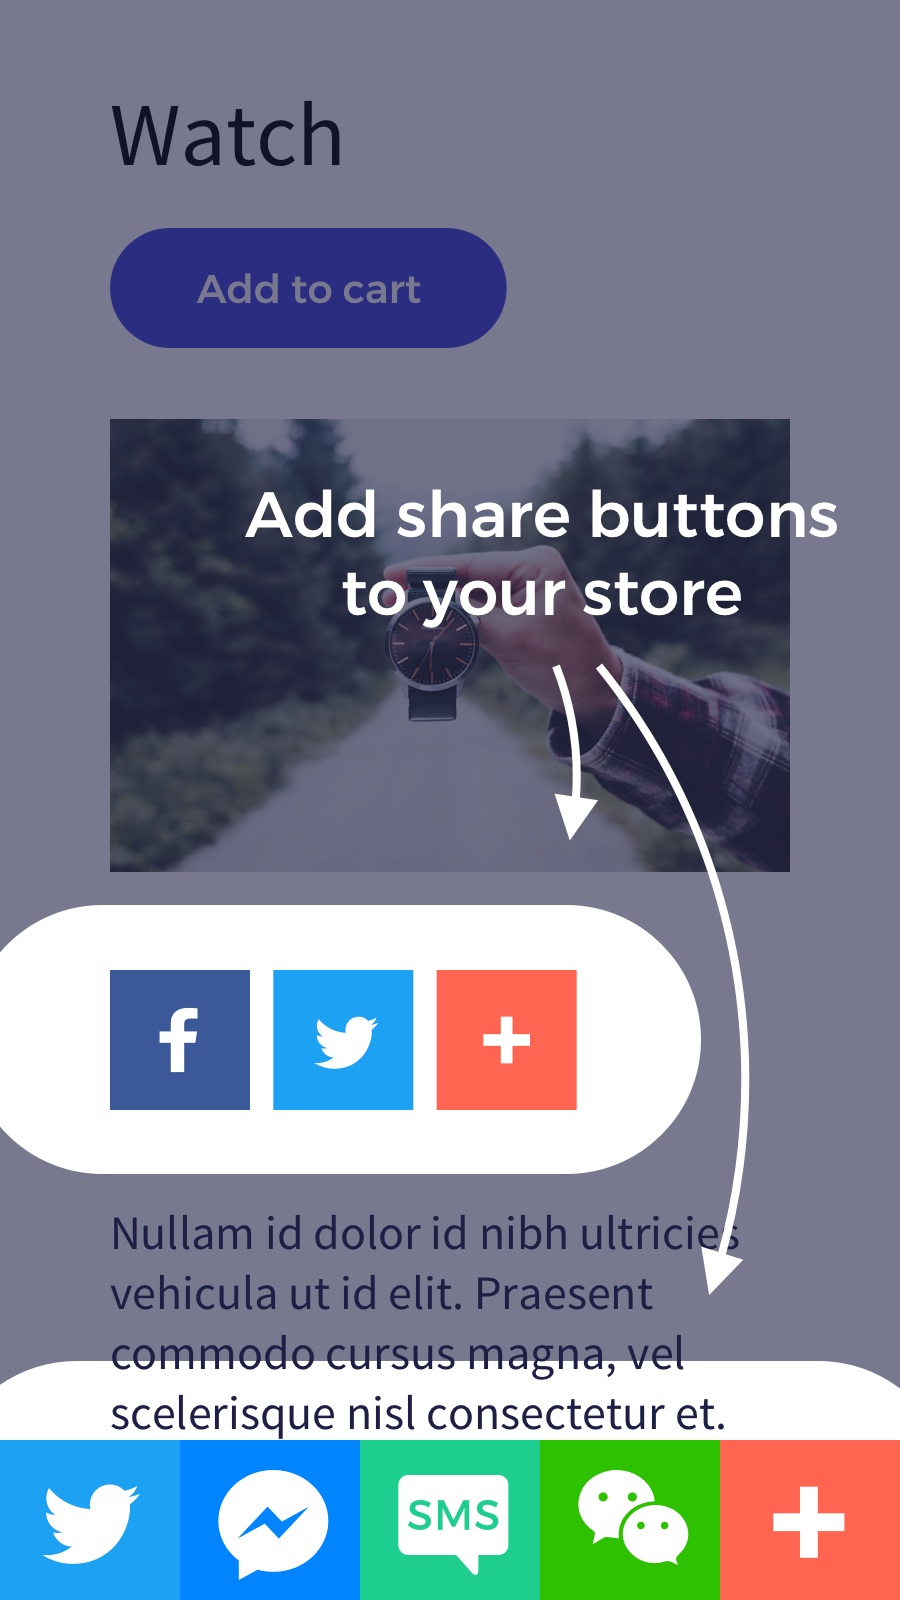 add share buttons to your store